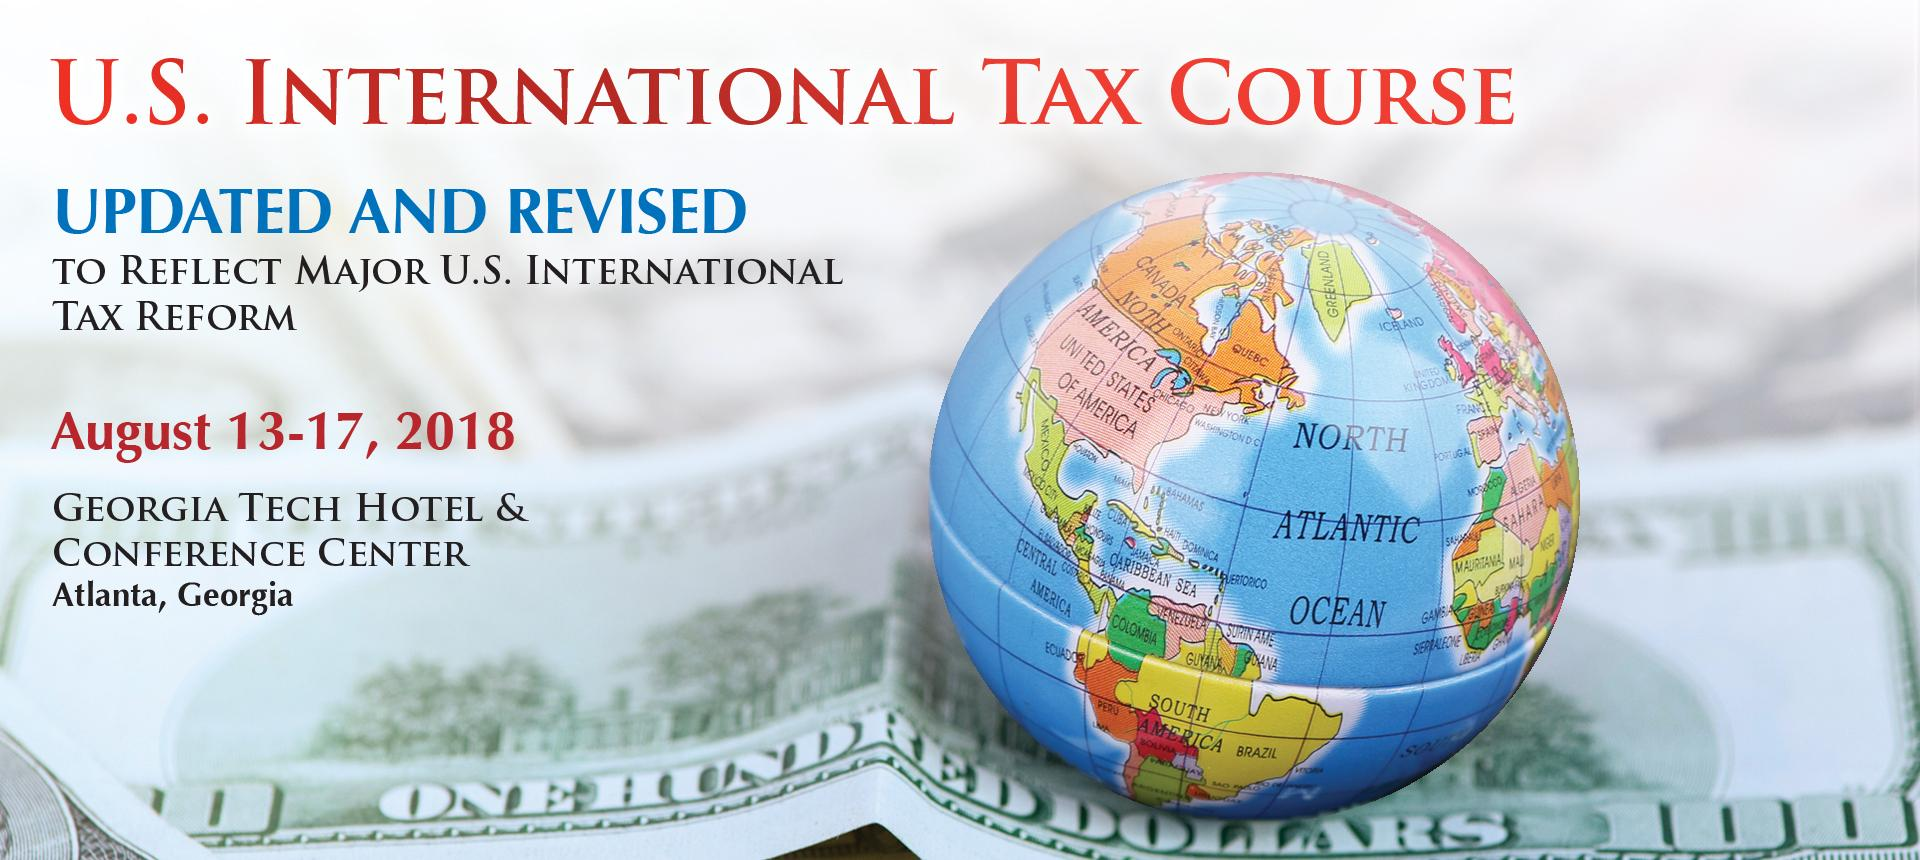 Register for the U.S. International Tax Course